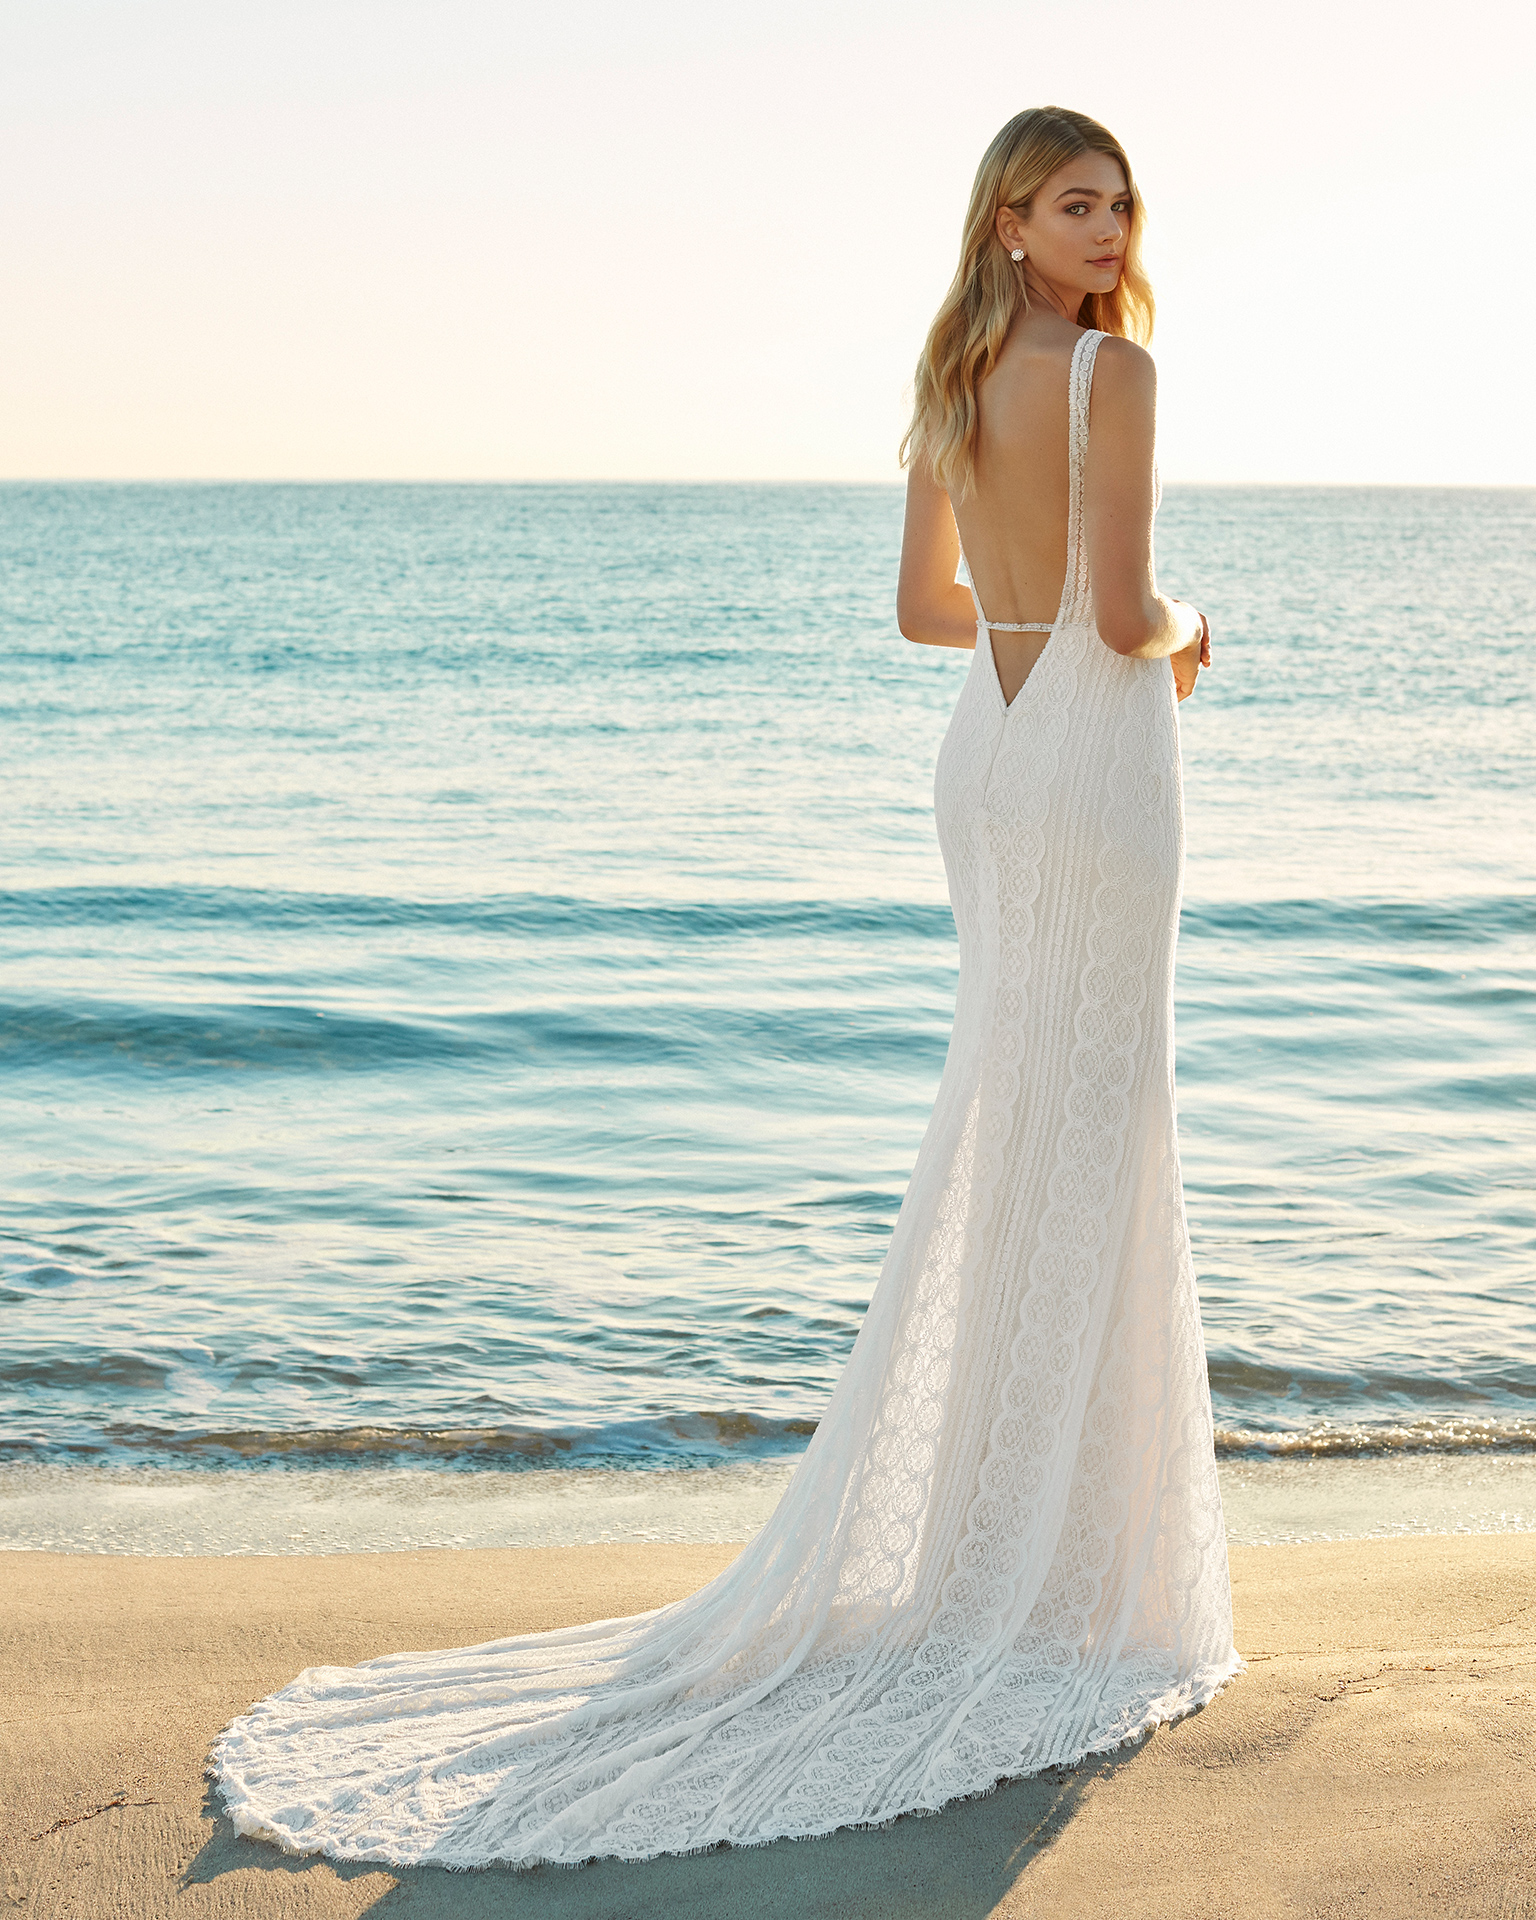 Simple Wedding Dresses 2019: Wedding Dresses - New 2019 Collections